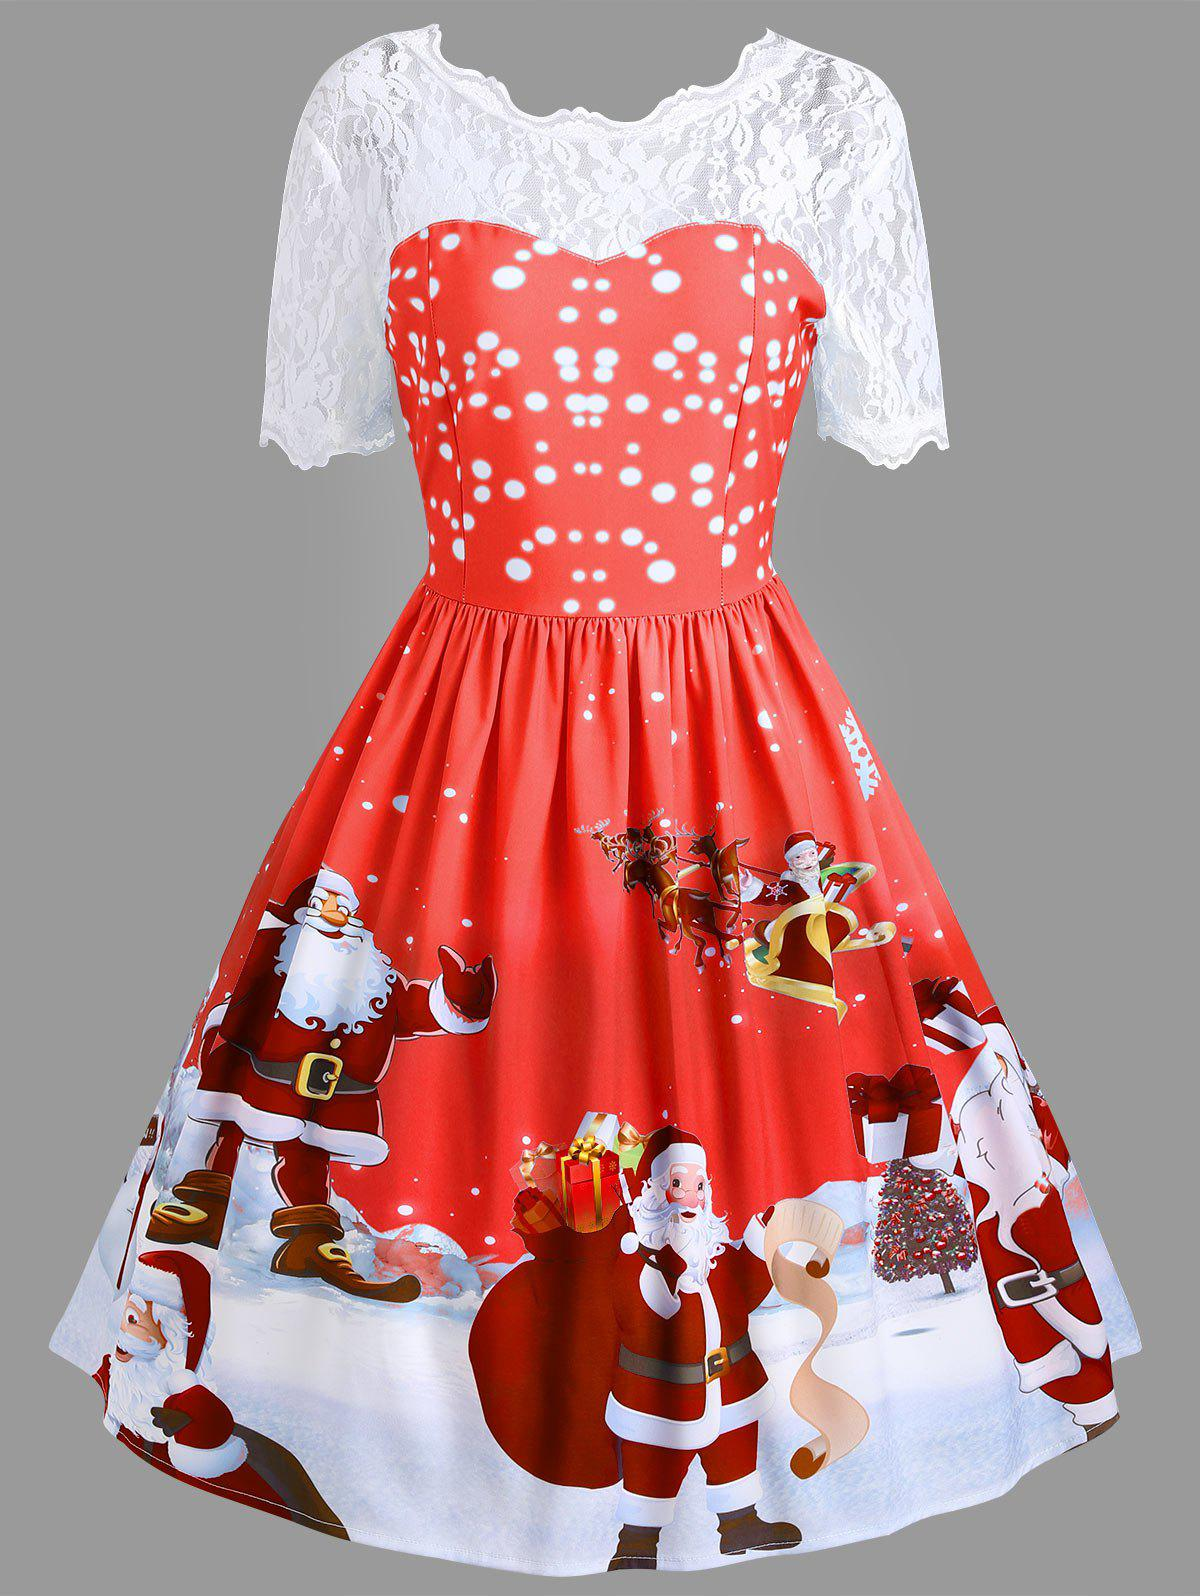 Vintage Lace Insert Santa Claus Print Christmas DressWOMEN<br><br>Size: L; Color: RED; Style: Vintage; Material: Polyester,Spandex; Silhouette: A-Line; Dresses Length: Knee-Length; Neckline: Round Collar; Sleeve Length: Short Sleeves; Pattern Type: Patchwork,Print; With Belt: No; Season: Fall,Spring; Weight: 0.3500kg; Package Contents: 1 x Dress;